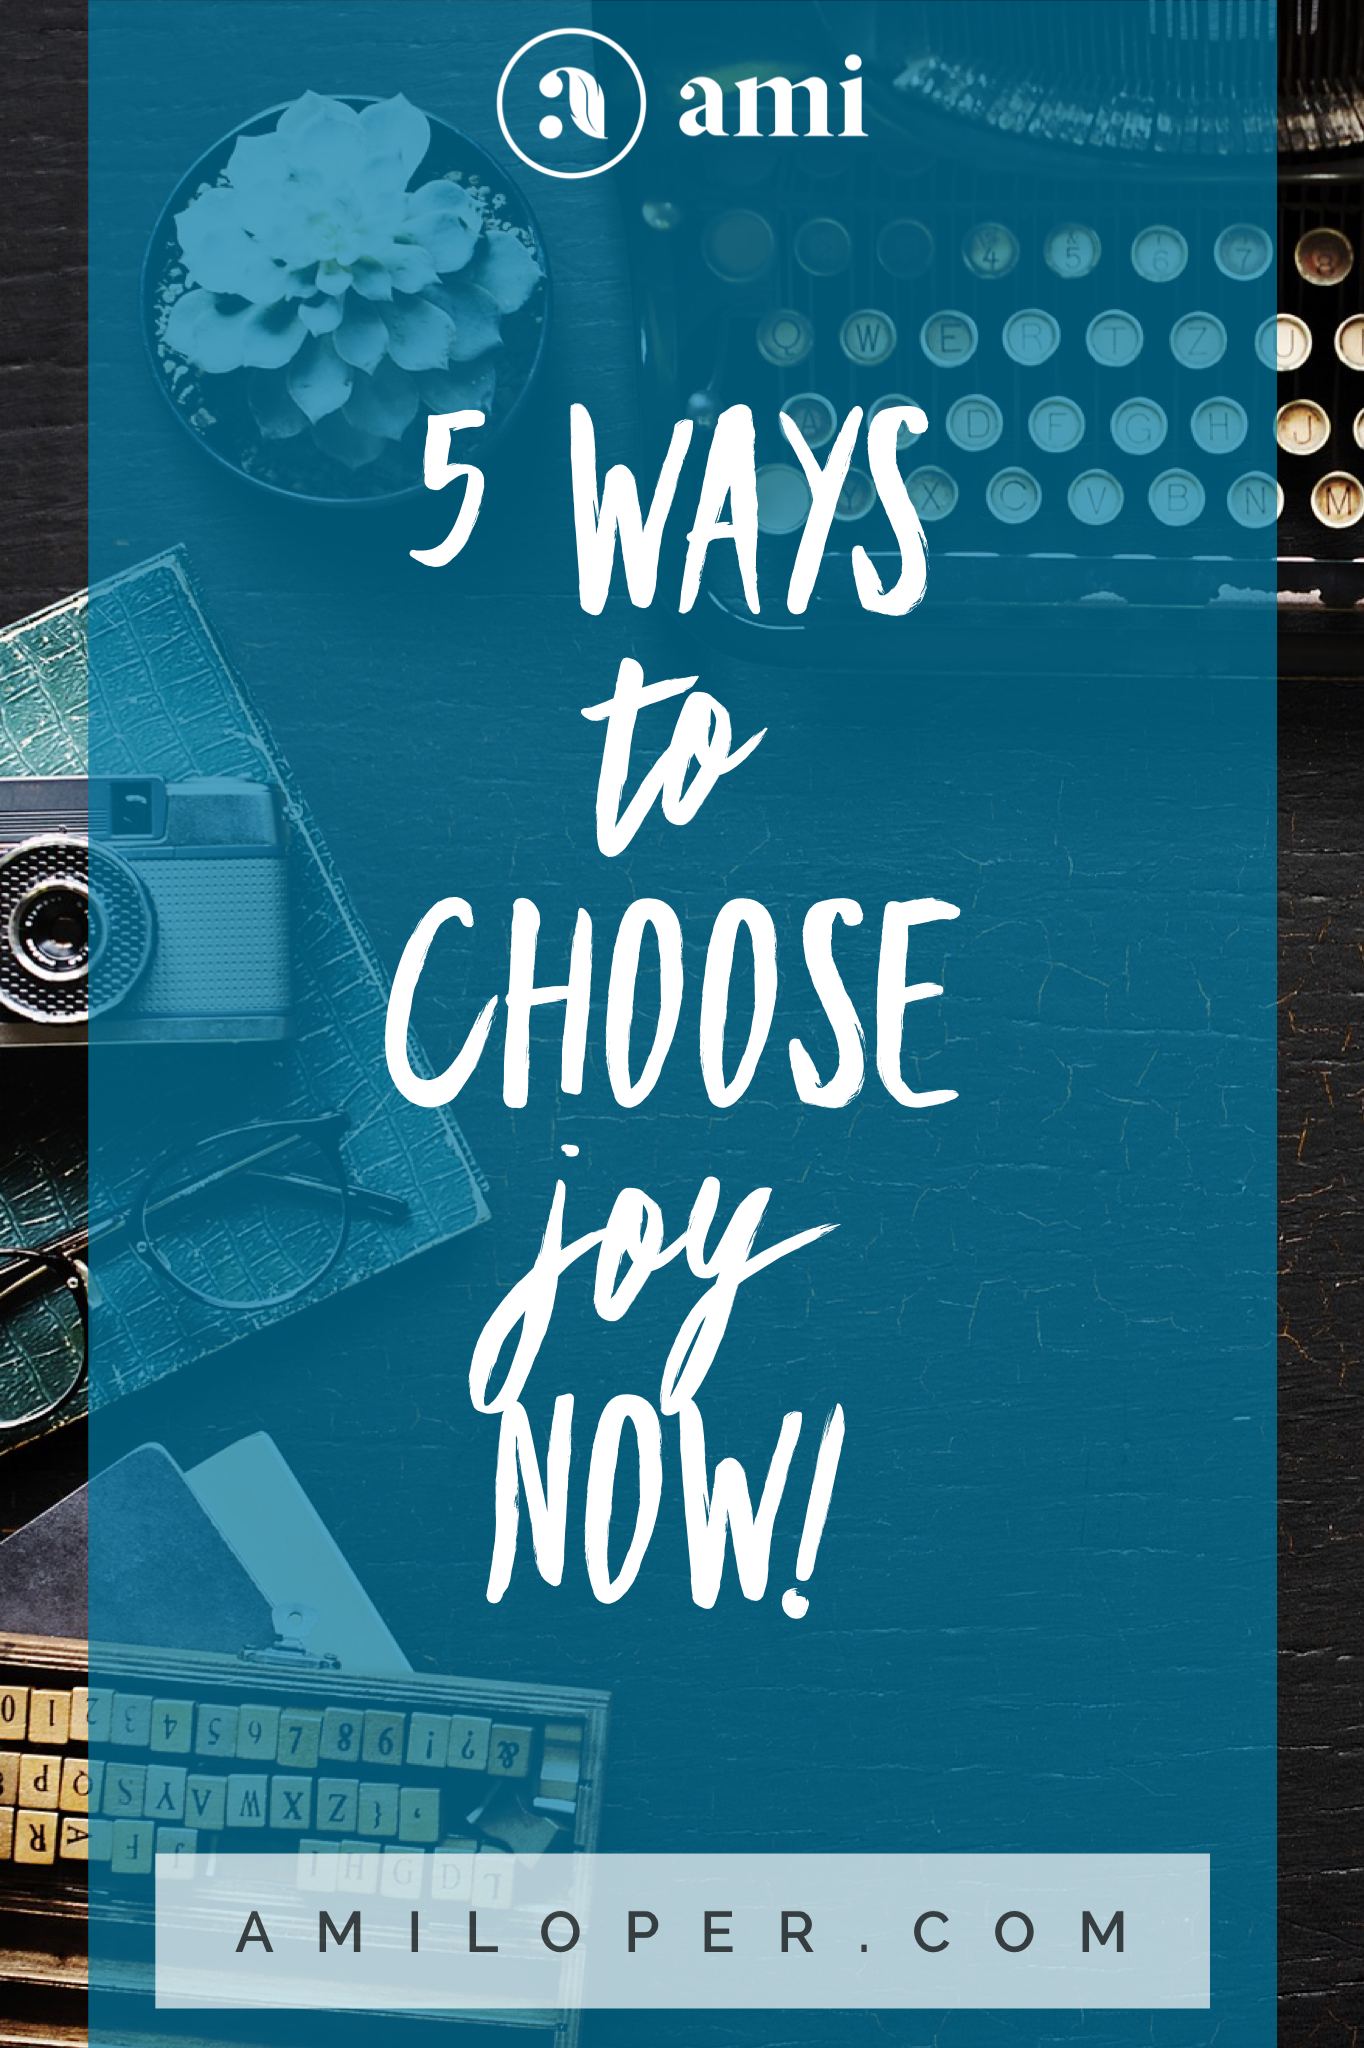 Are you in need of some practical ways to get and KEEP joy in your life? I learned so much about this as I taught one of my own daughters how to choose joy over moodiness. #ChoosingJoy #Mood #Blog #ChristianBlog